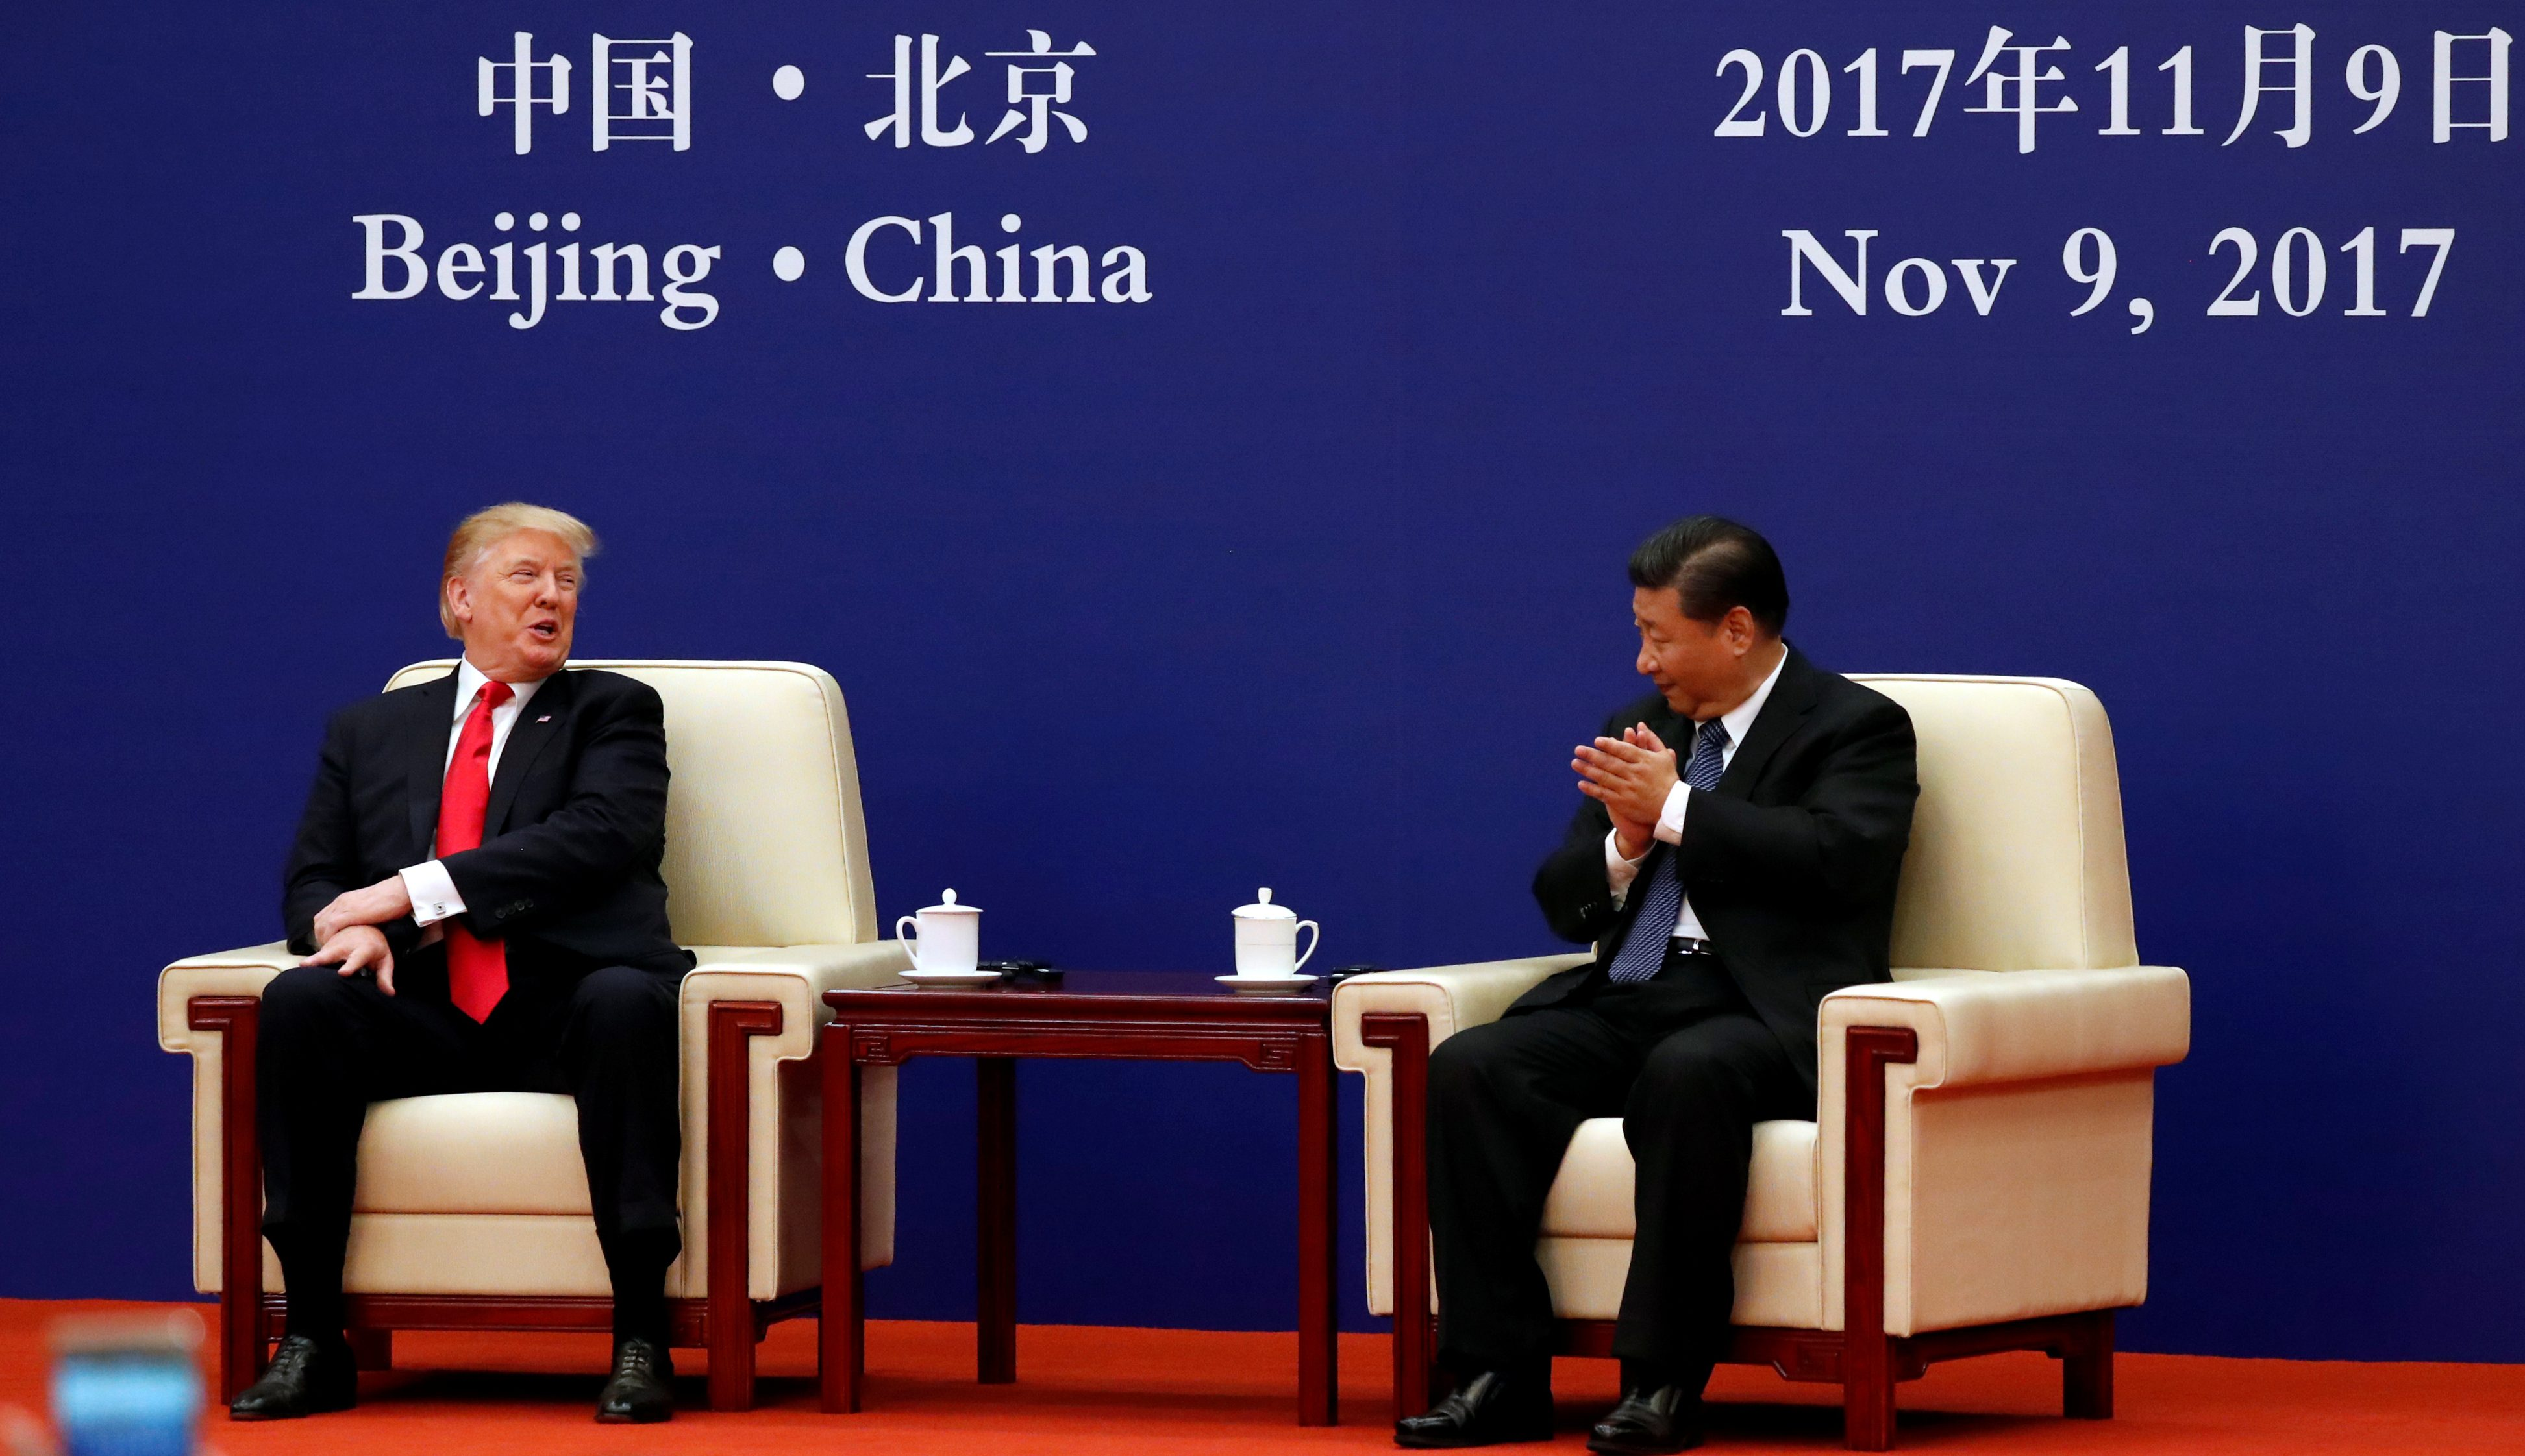 U.S. President Donald Trump and China's President Xi Jinping meet business leaders at the Great Hall of the People in Beijing, China, November 9, 2017. REUTERS/Jonathan Ernst - RC1B066AD260